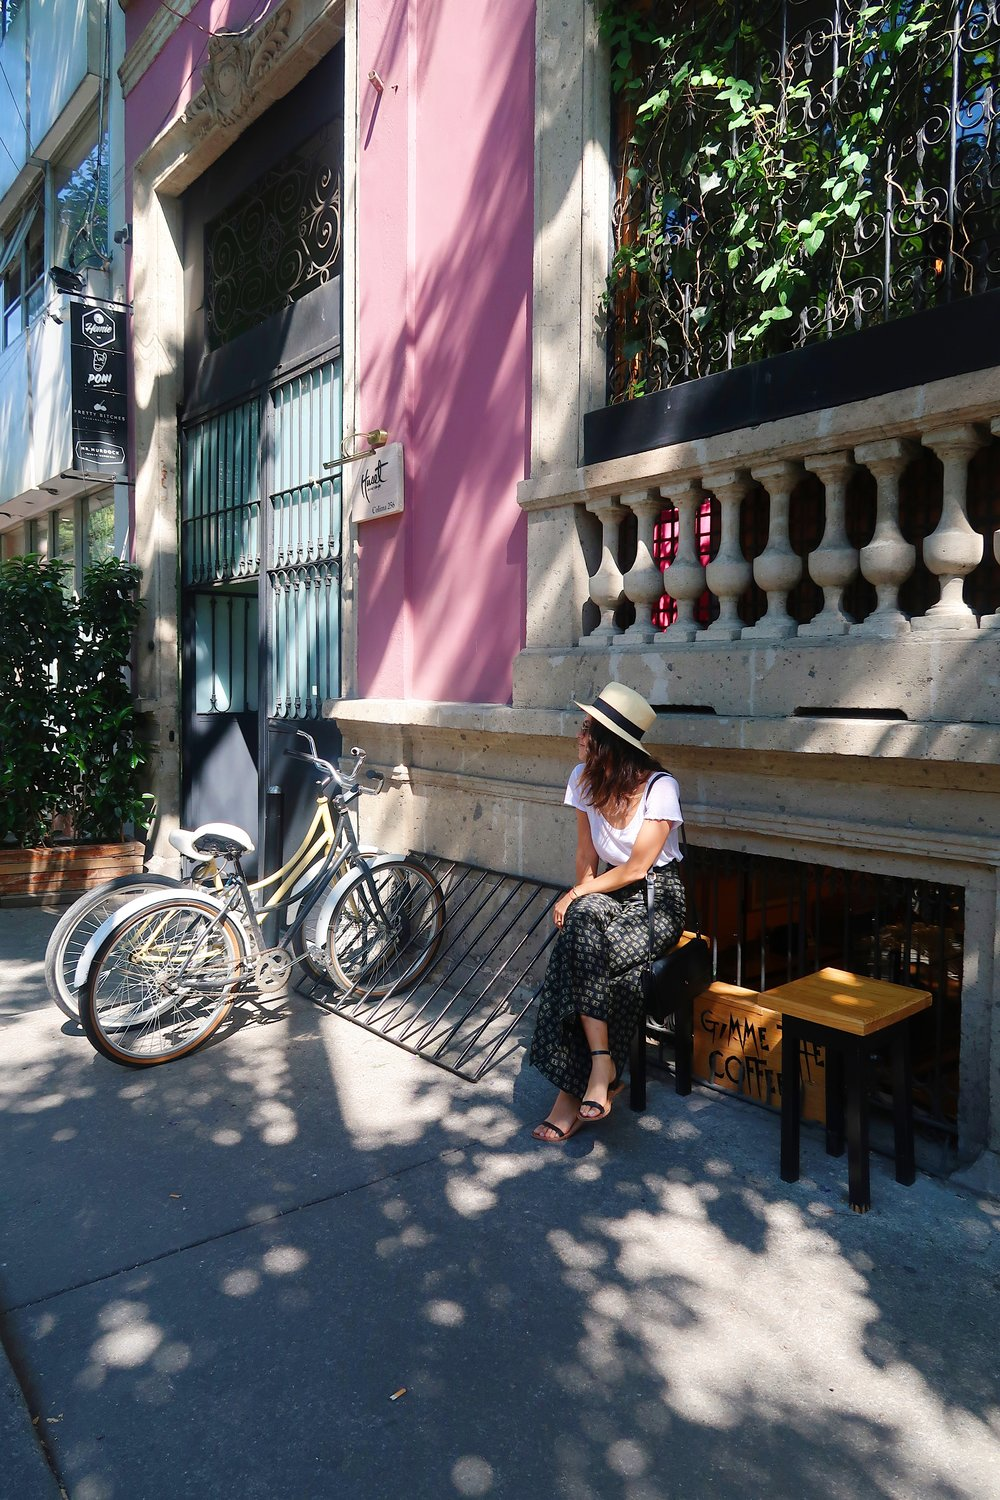 The streets in MX City are flooded with hidden little bars, cafes, restaurants...it's awesome.